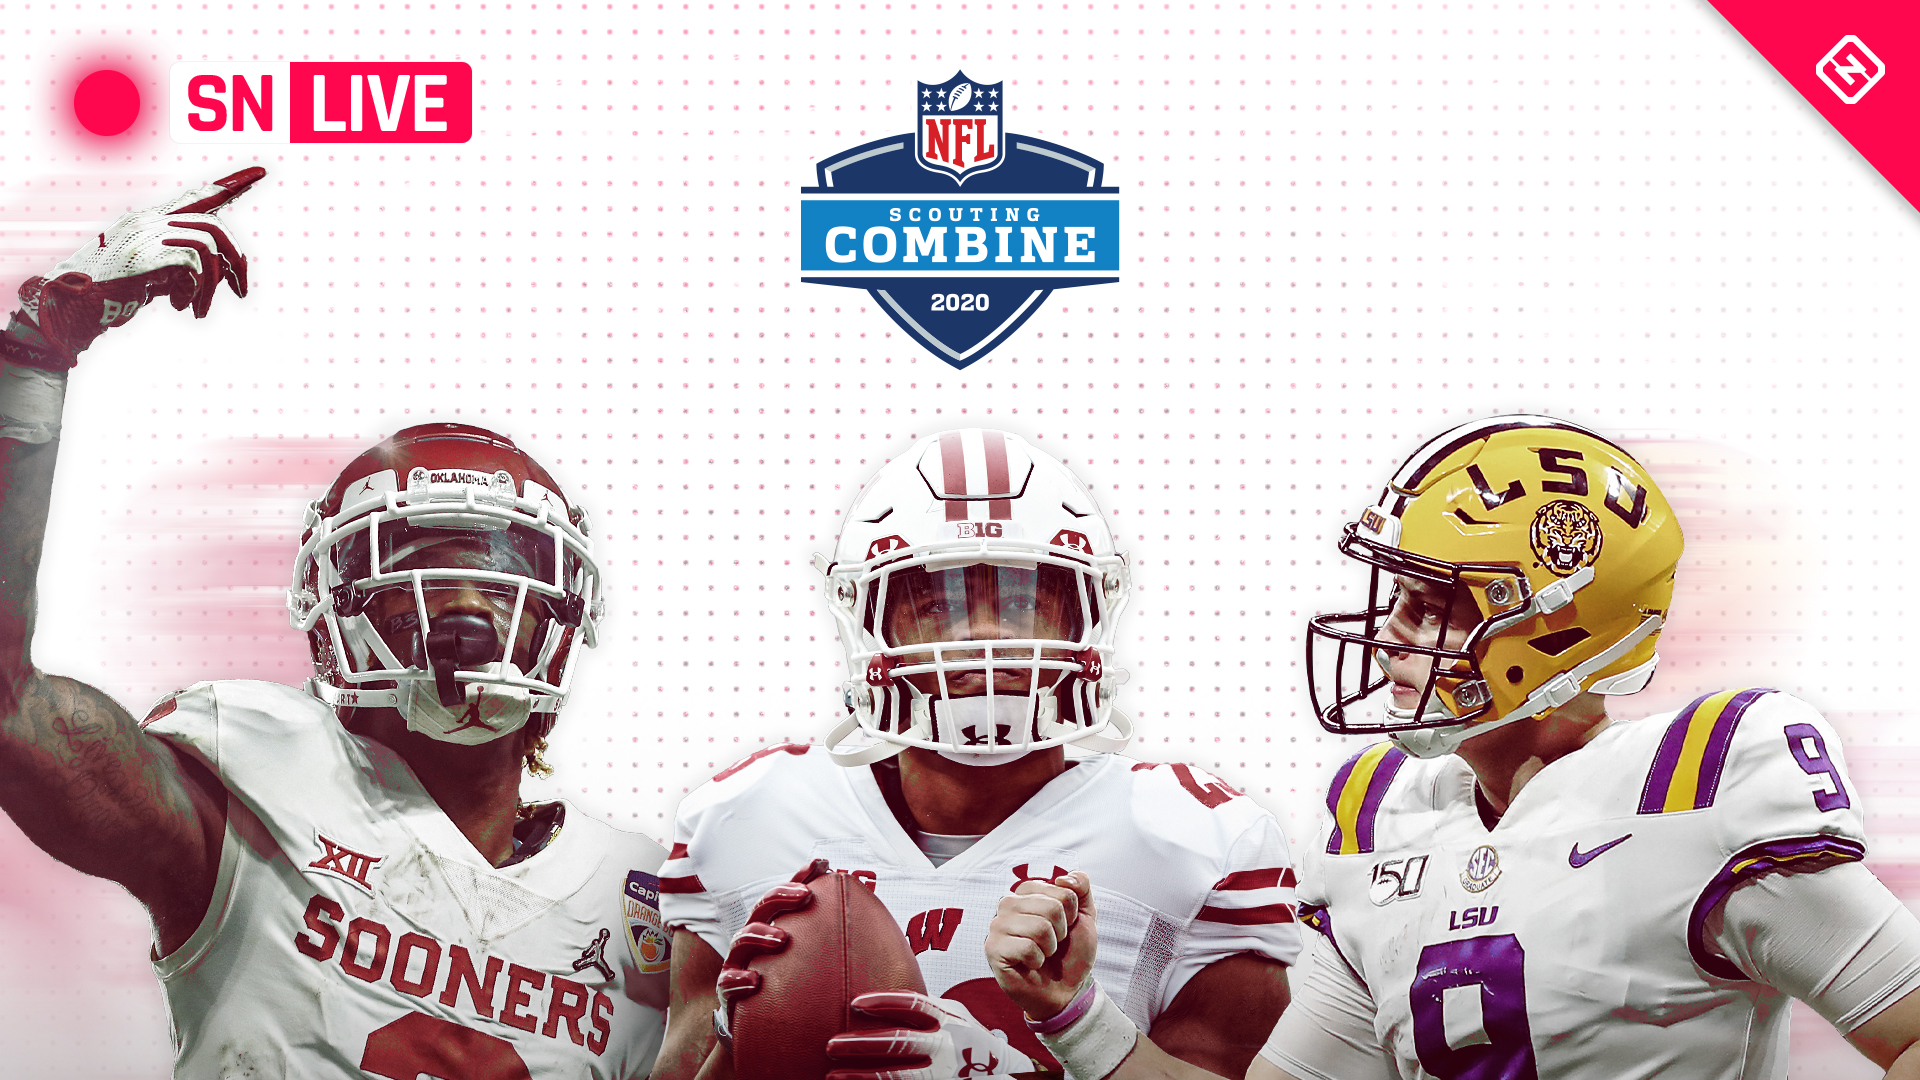 NFL Combine results tracker: Live updates, highlights from 2020 player workouts